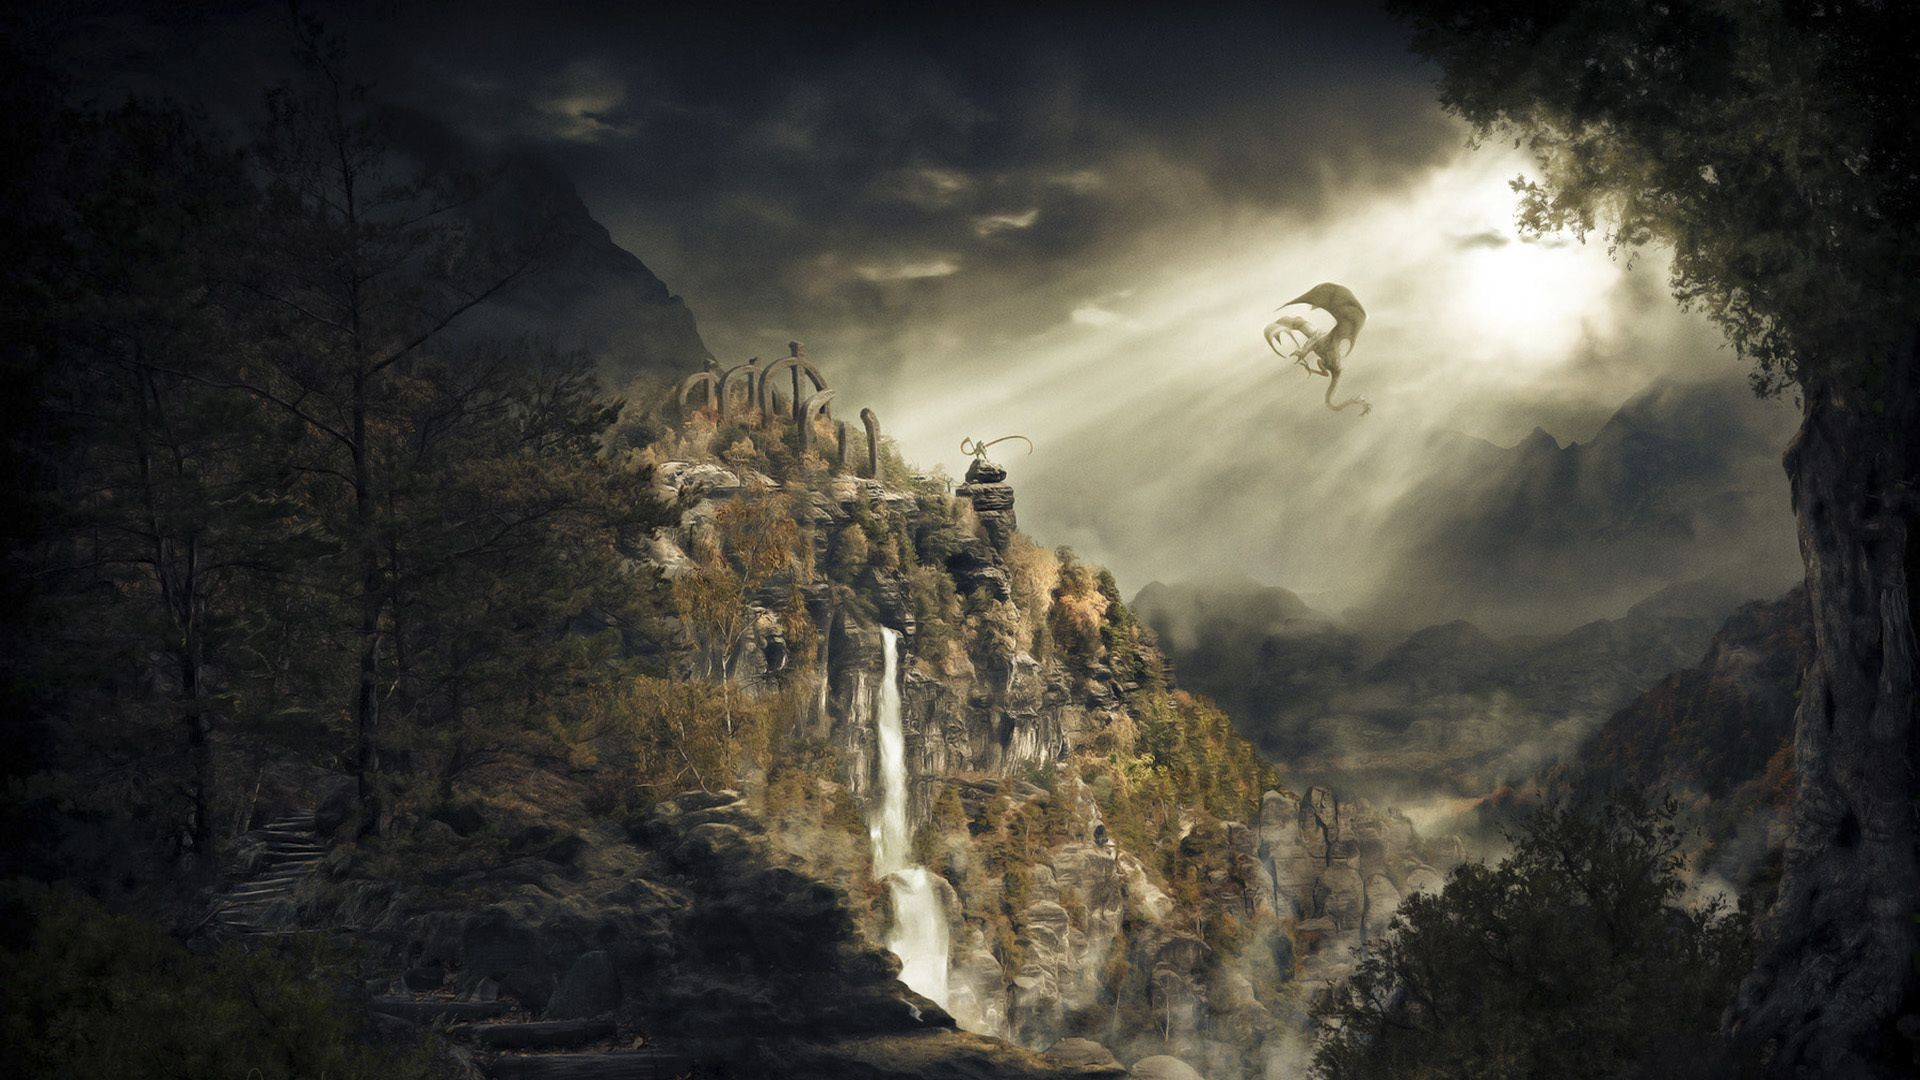 Cars Hd Wallpaper For Computer Waterfall Skyrim Dragonborn Dragon Mountain Android